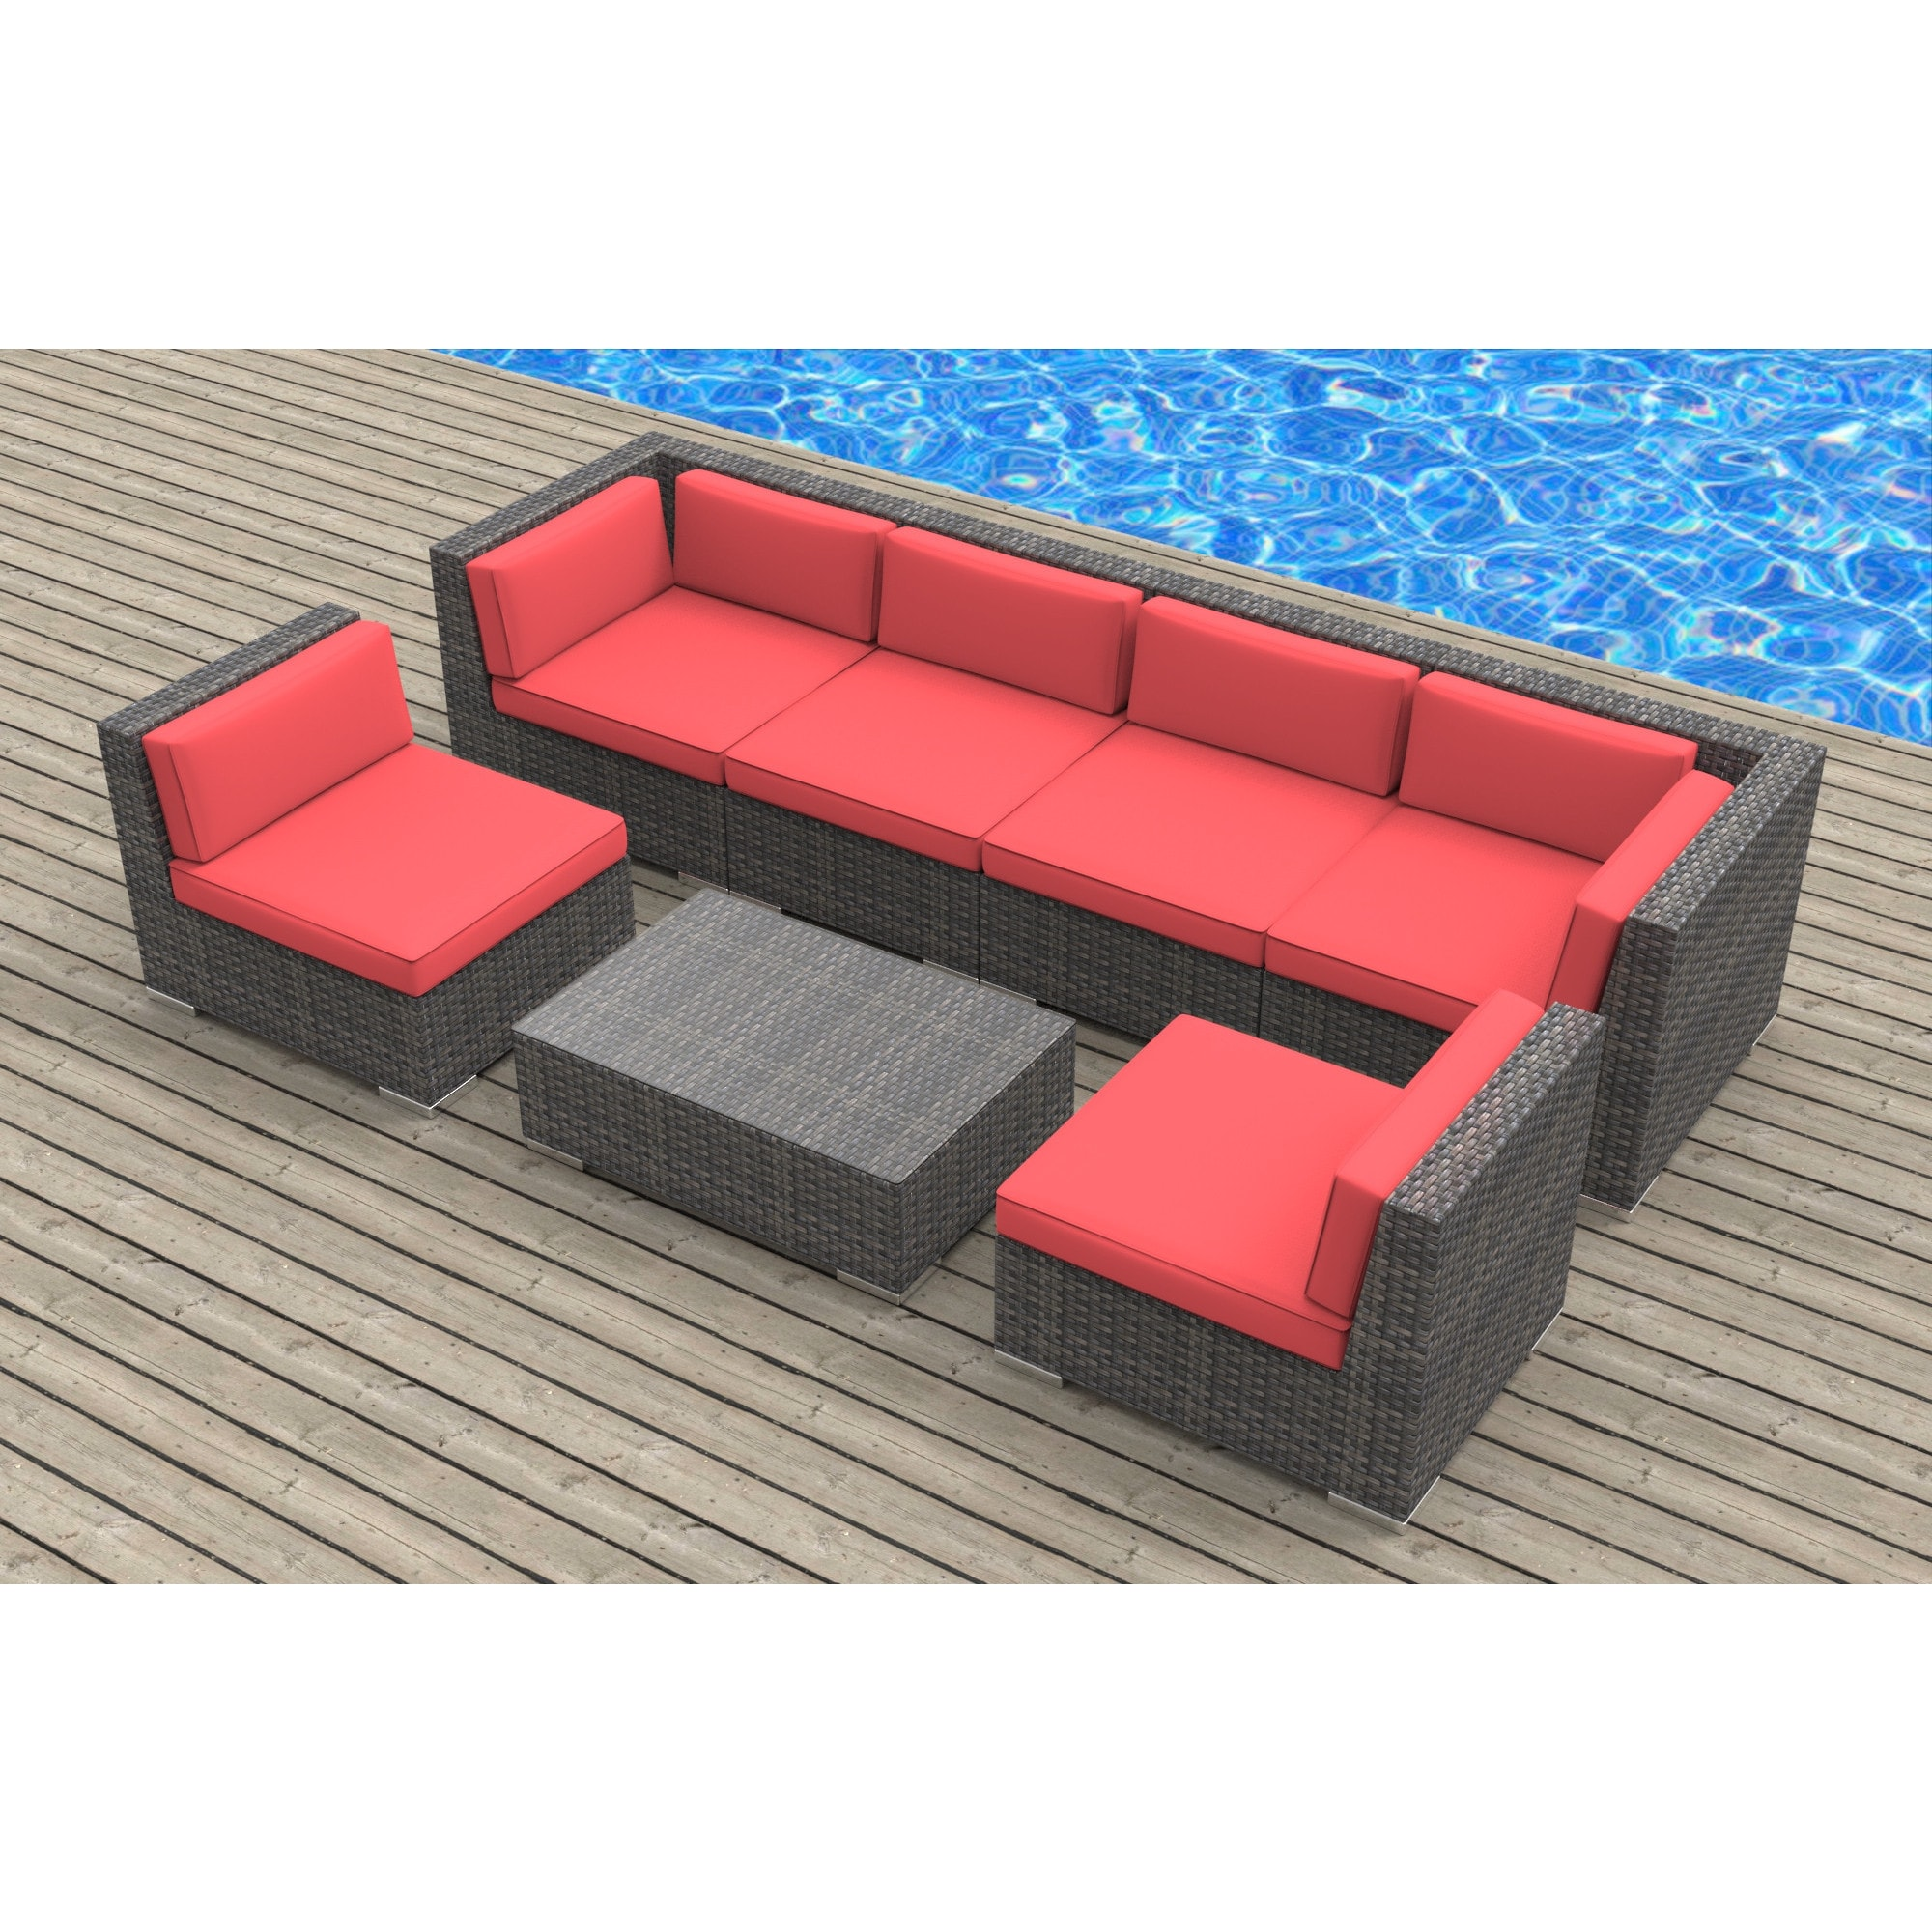 Urban Furnishing Oahu Wicker Rattan 7 Piece Sectional Sofa Outdoor Patio Furniture Set On Free Shipping Today 12017794